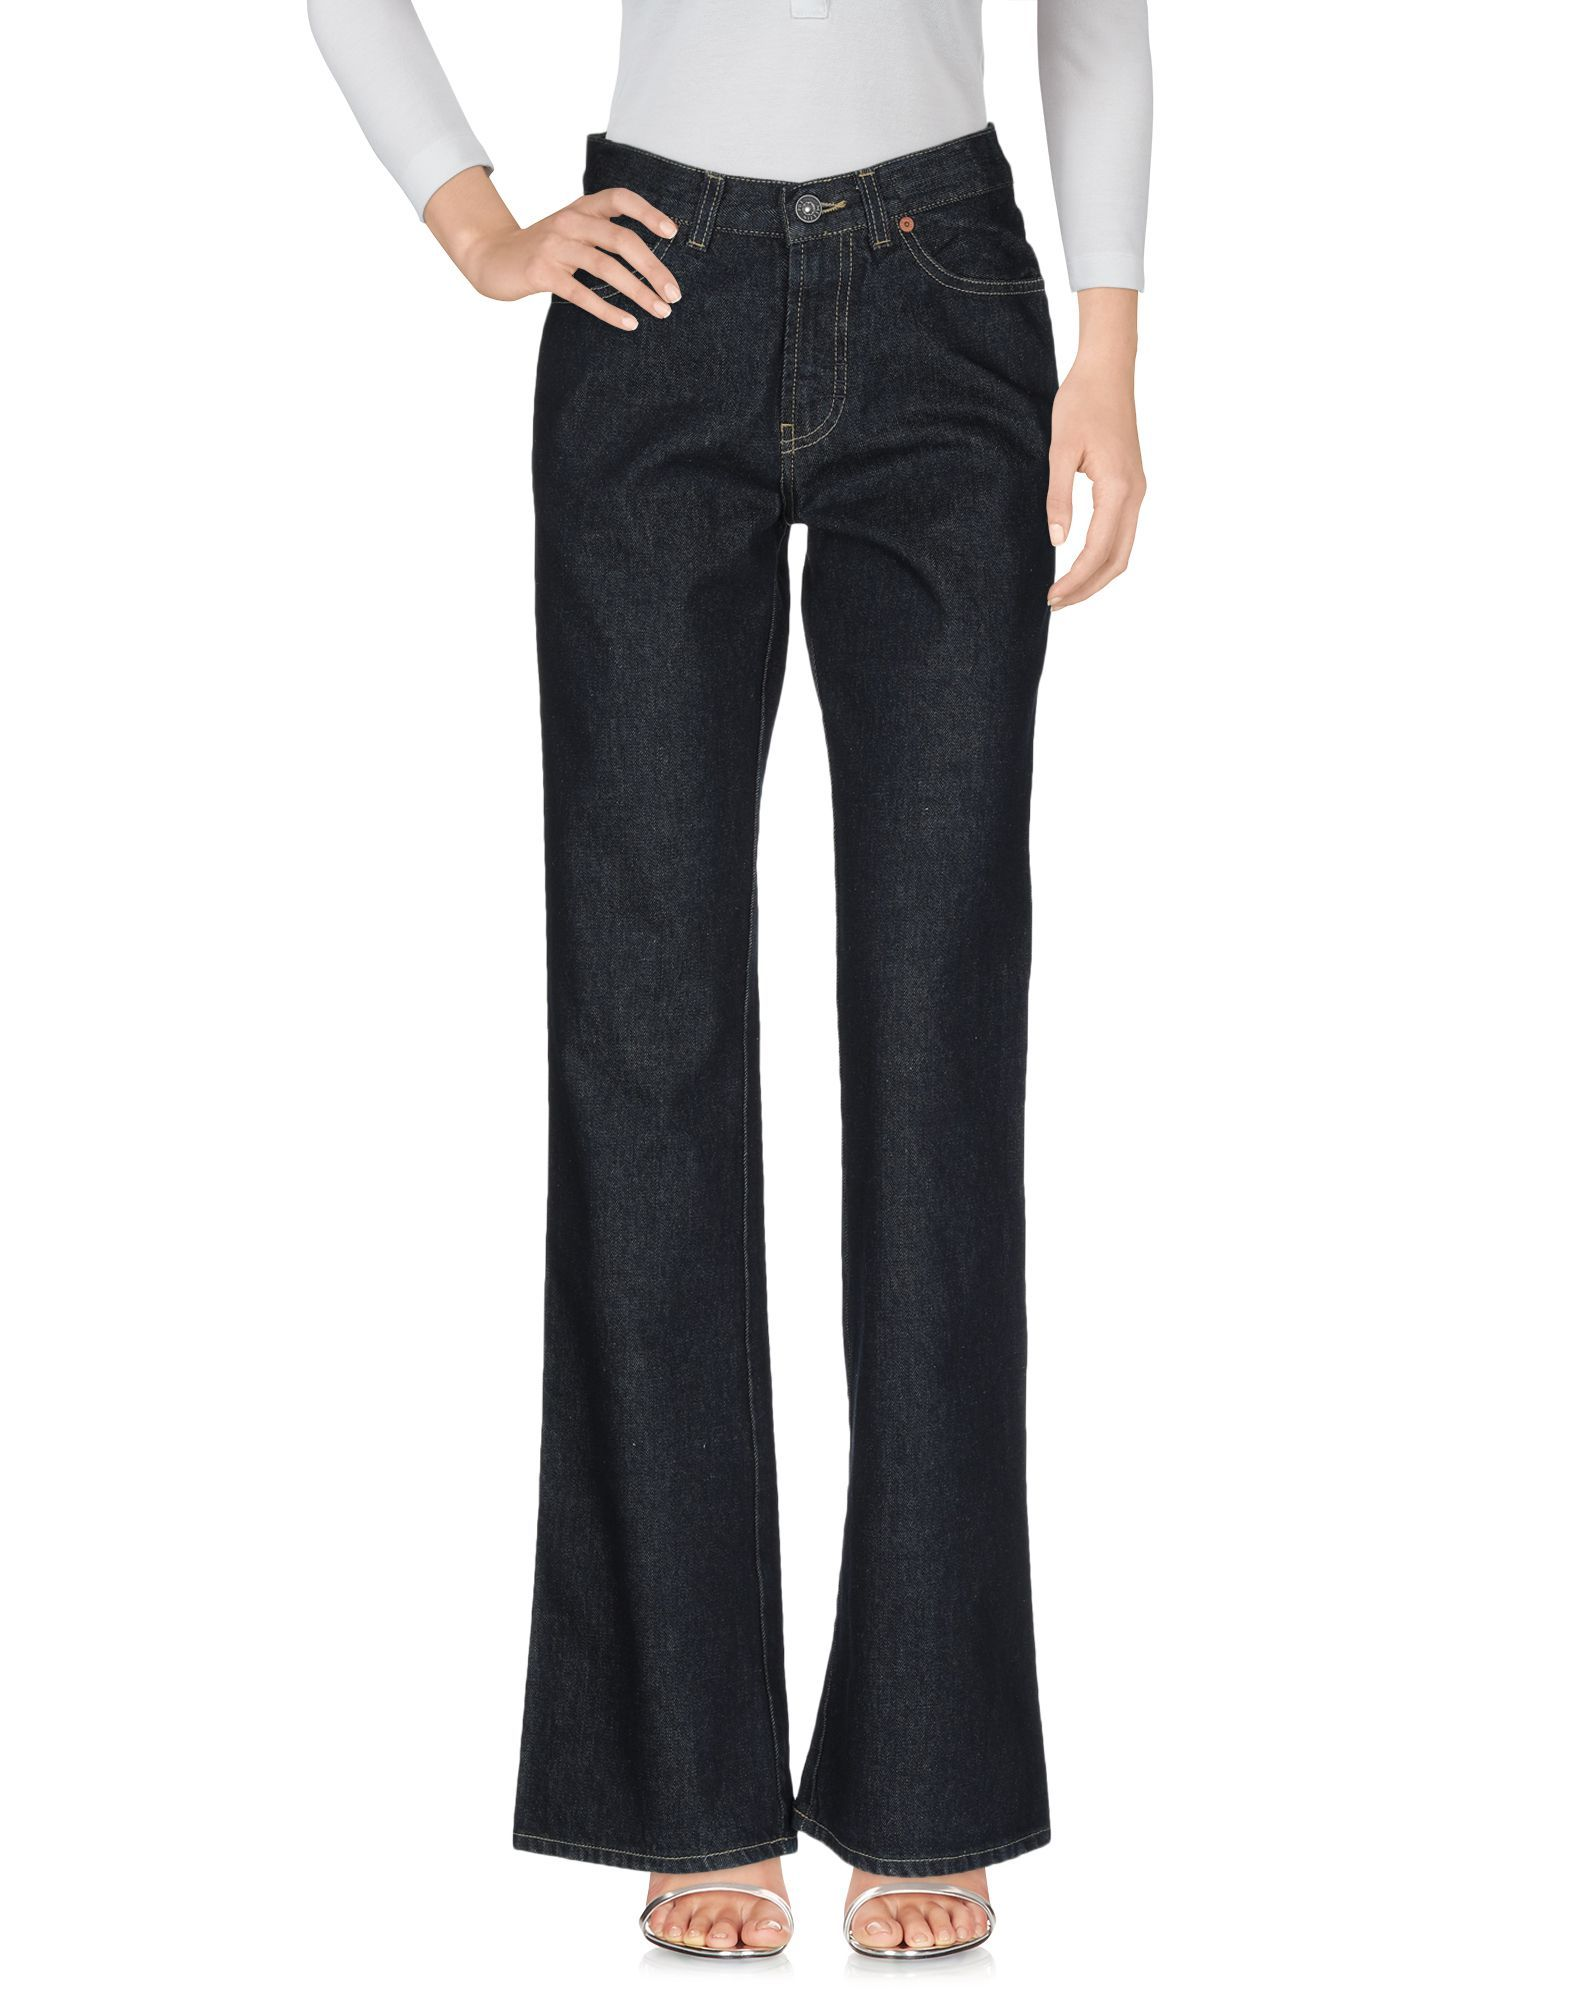 Meltin Pot Blue Cotton Flare Jeans